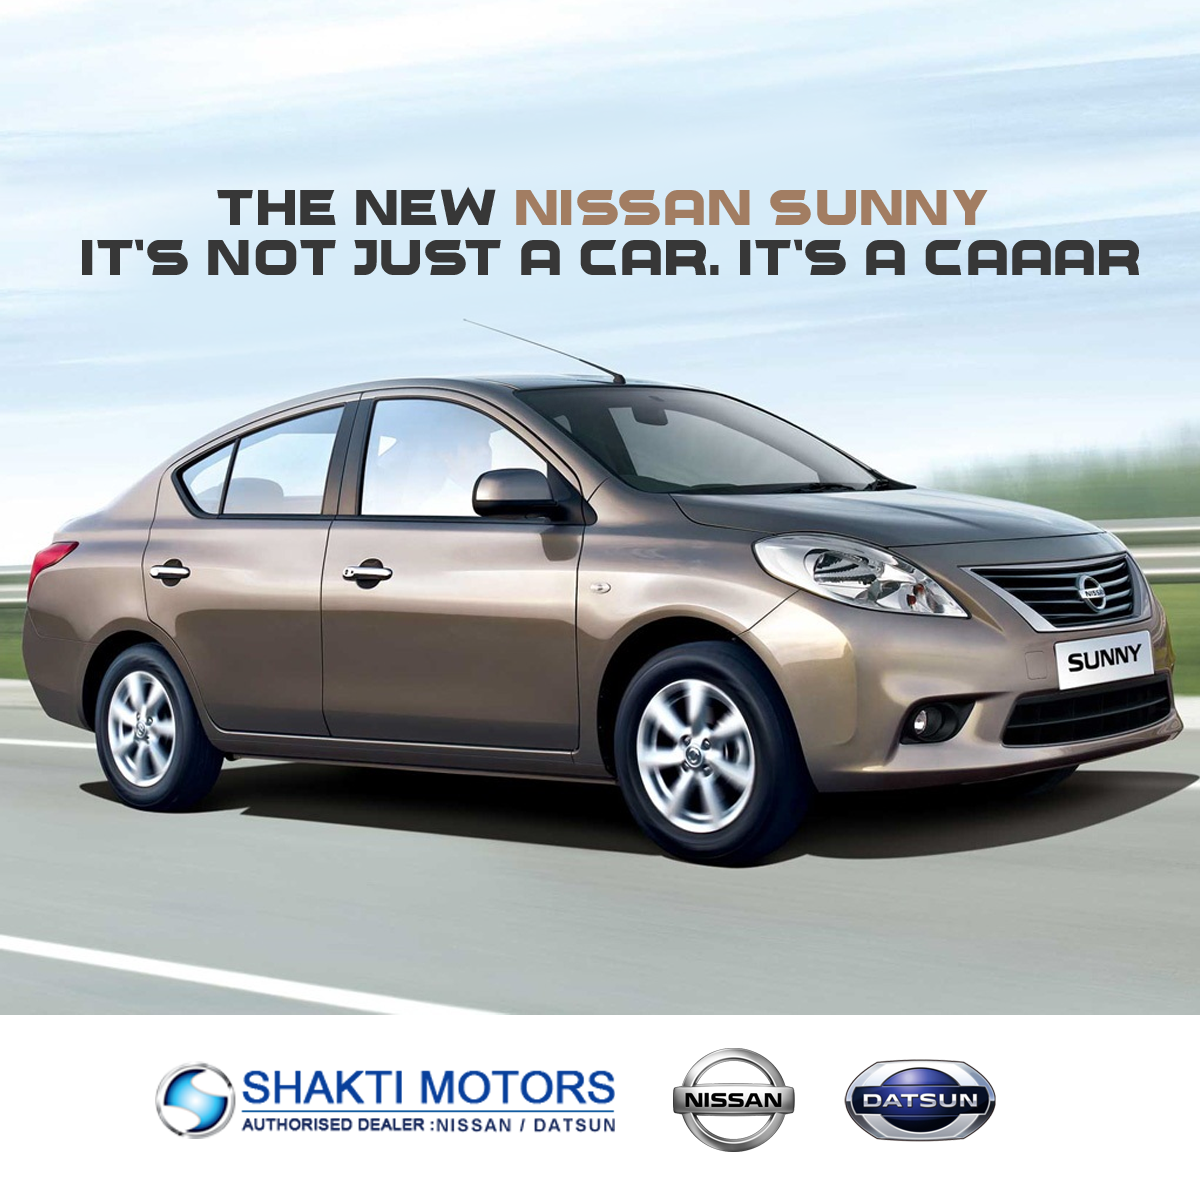 The New Nissansunny Its Not Just A Car Its A Caaar Nissancars Nissan Caaar Nissan Sunny Nissan Cars New Nissan